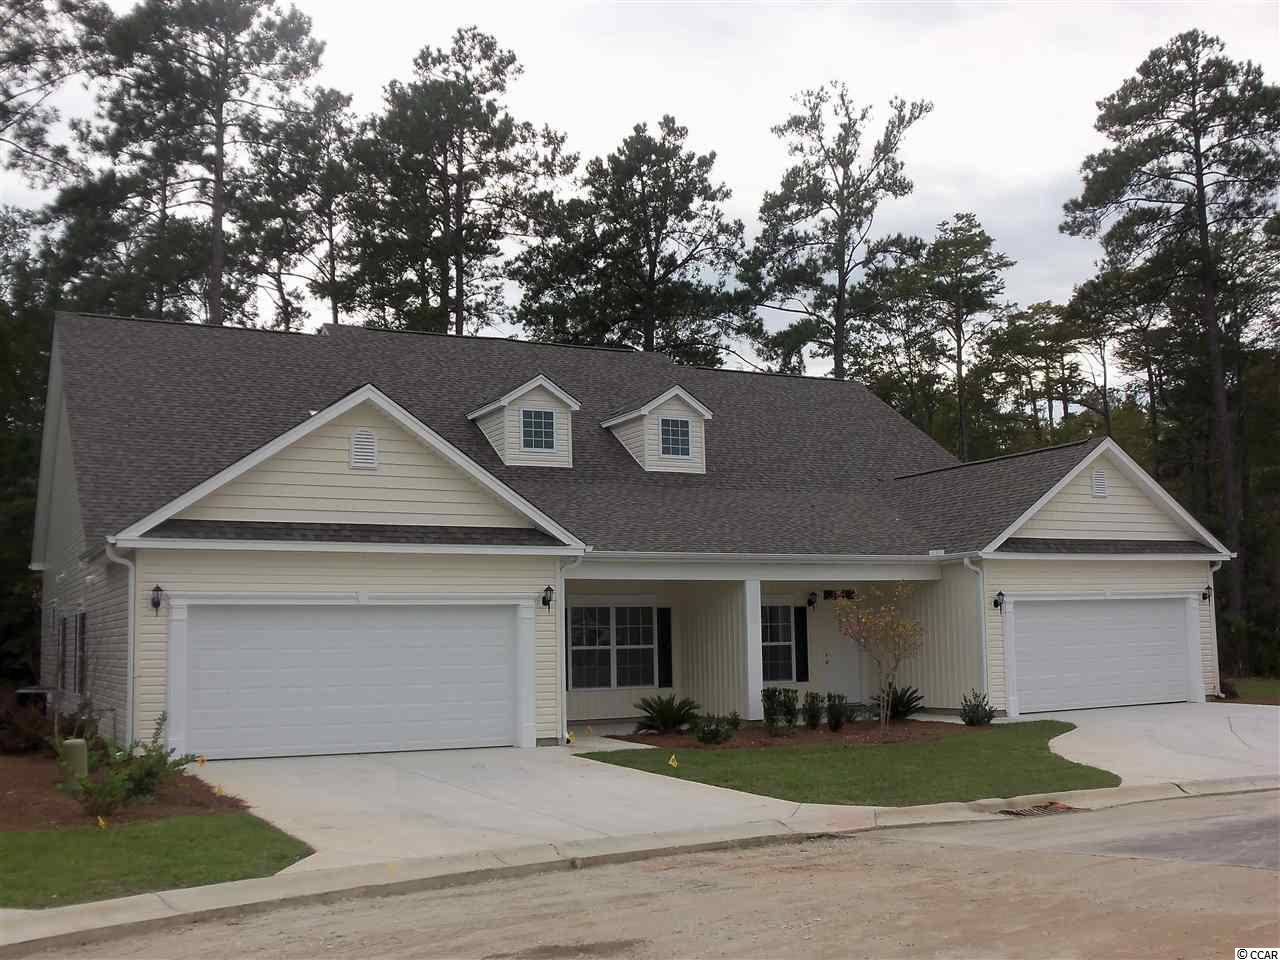 1/2 Duplex MLS:1809700 Marcliffe West at Blackmoor  678 Sunnyside Dr. Murrells Inlet SC